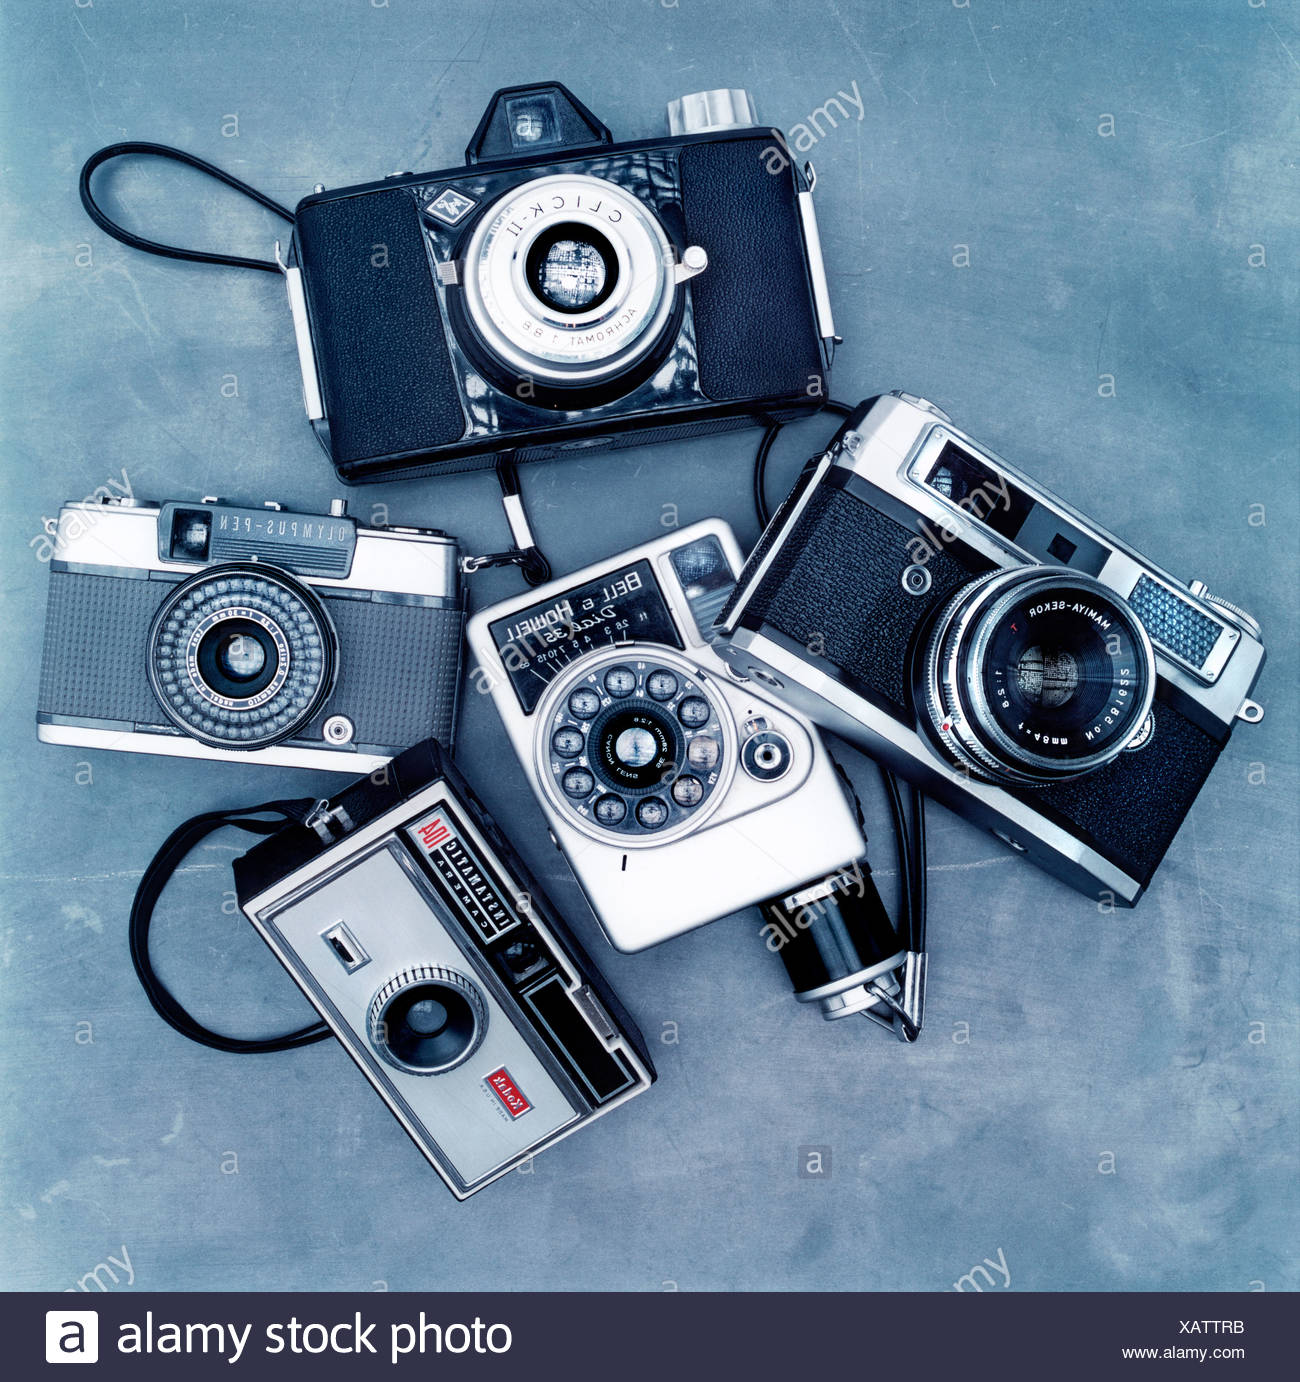 Collection of old fashioned cameras - Stock Image